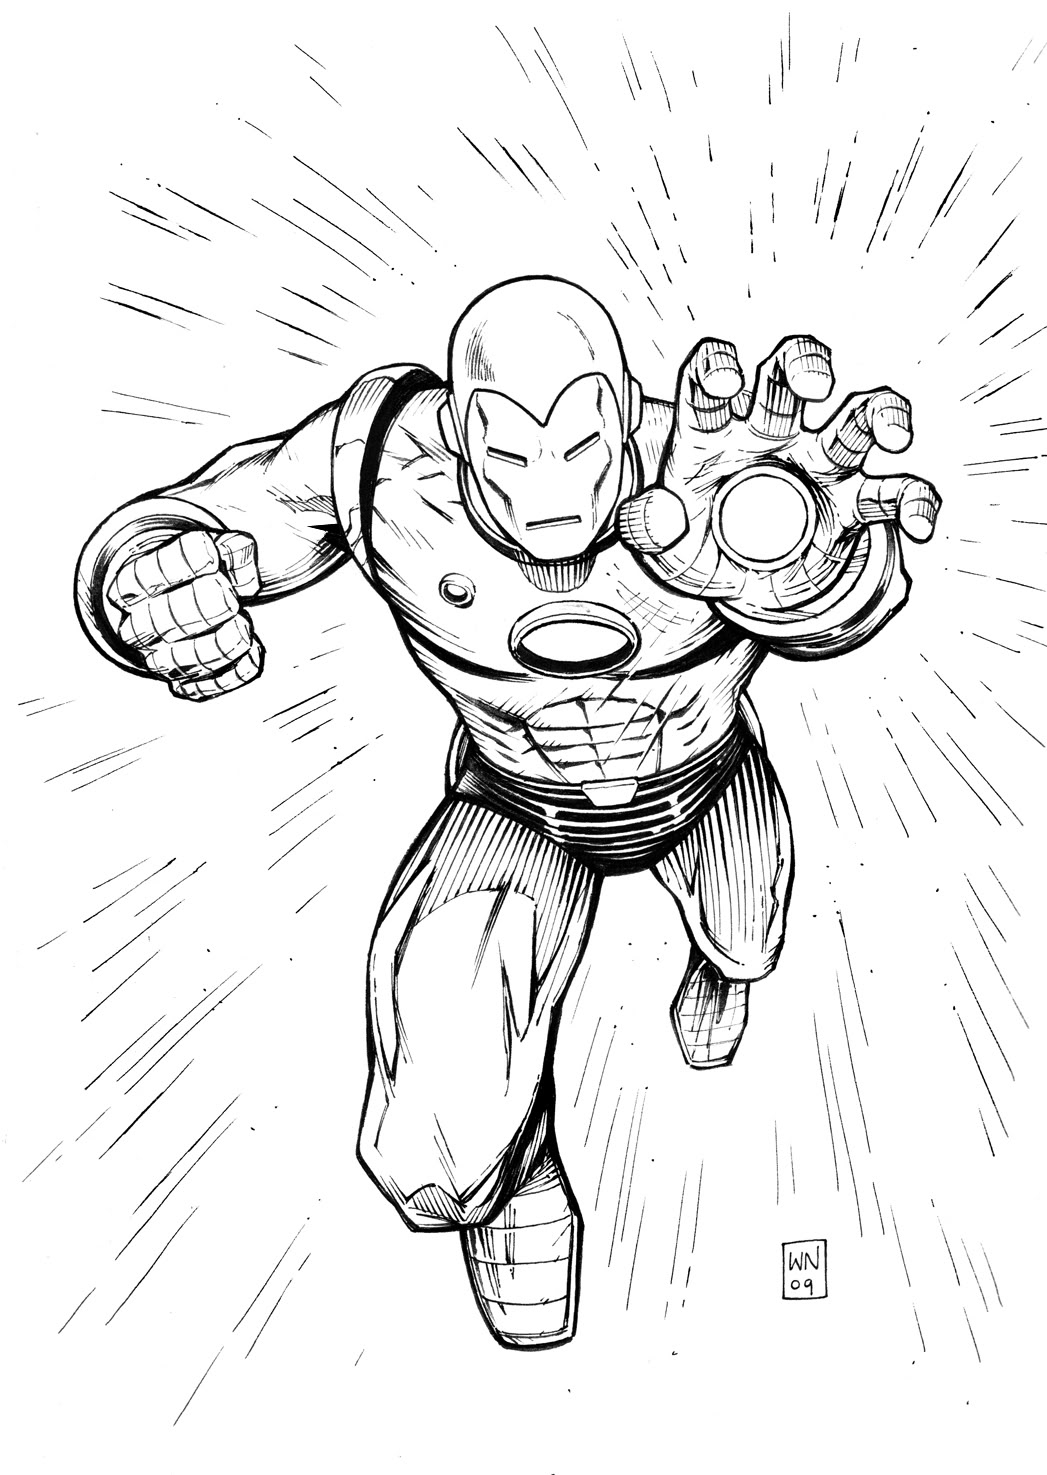 Printable Avengers Coloring Pages to Print | Free Coloring ...